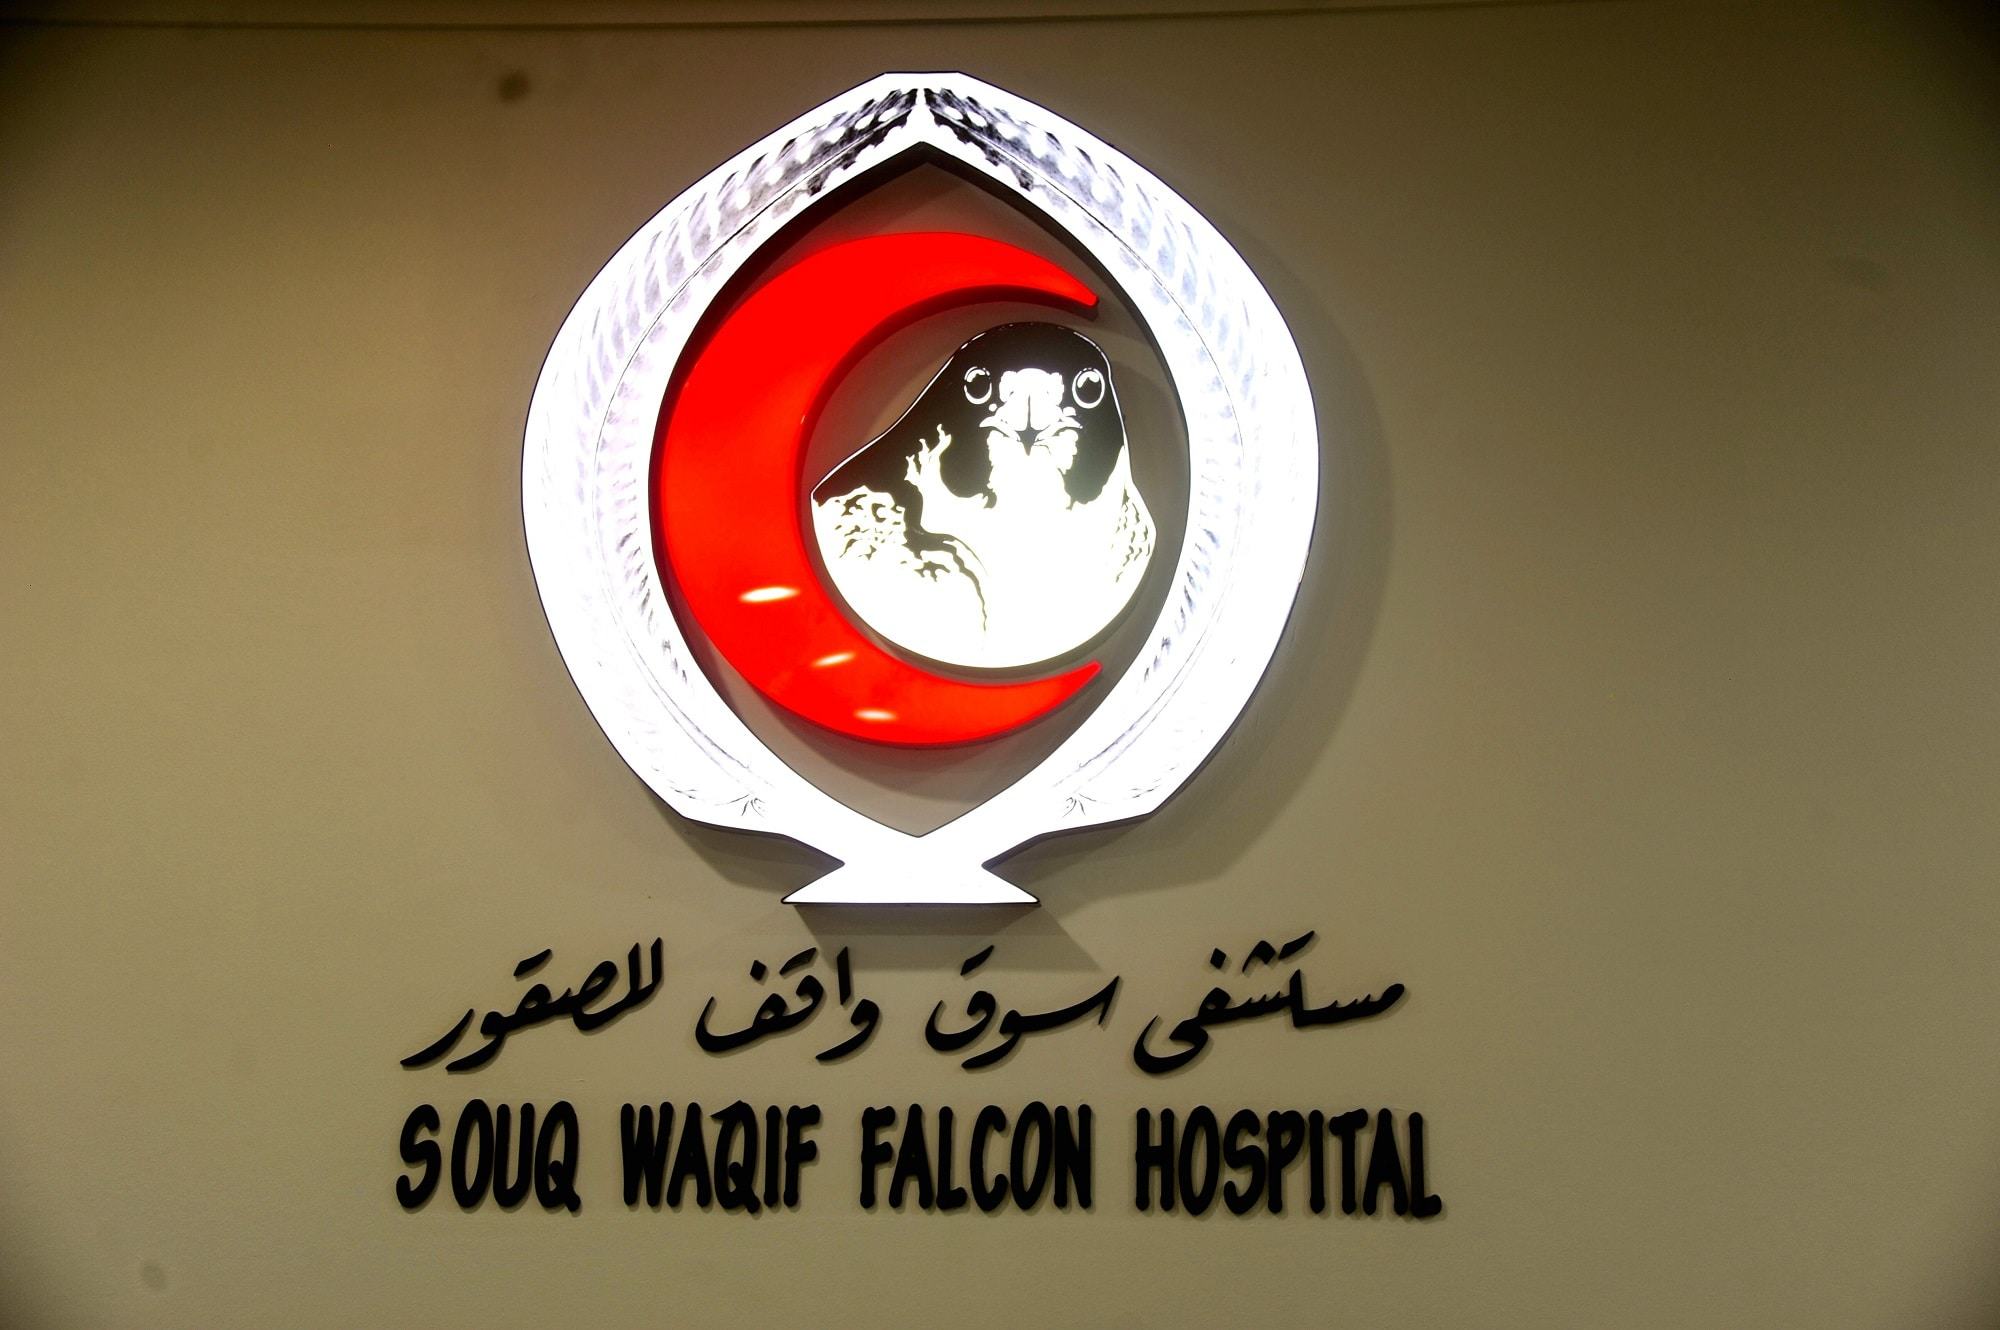 A man and his falcon at the Souq Waqif Falcon Hospital